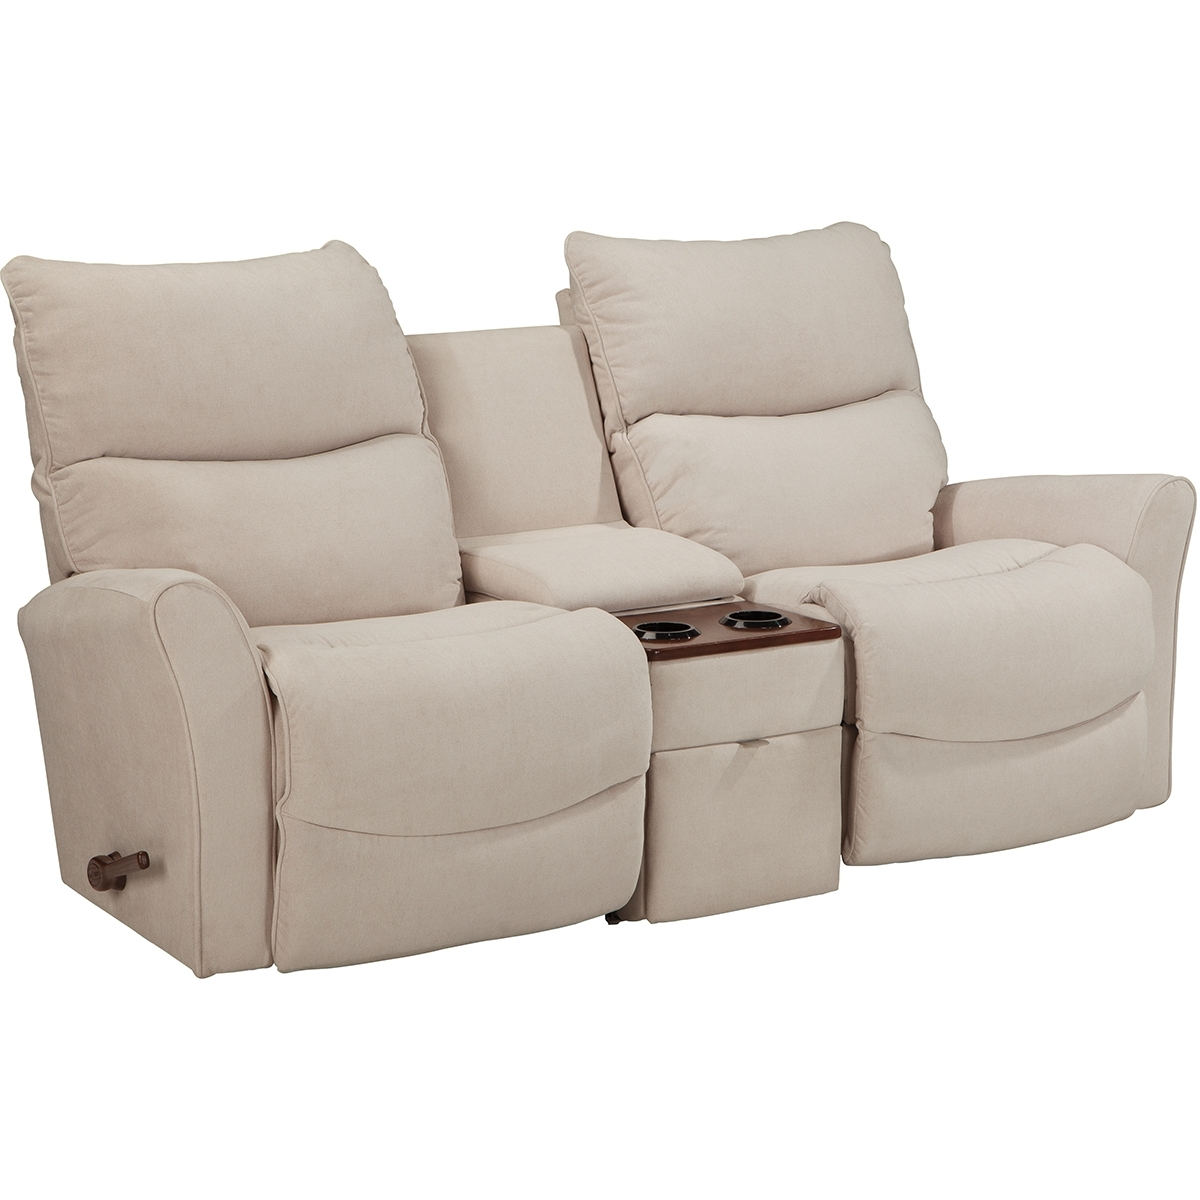 Sectional Sofas & Sectional Couches | La Z Boy Pertaining To Lazy Boy Sectional Sofas (Image 9 of 10)